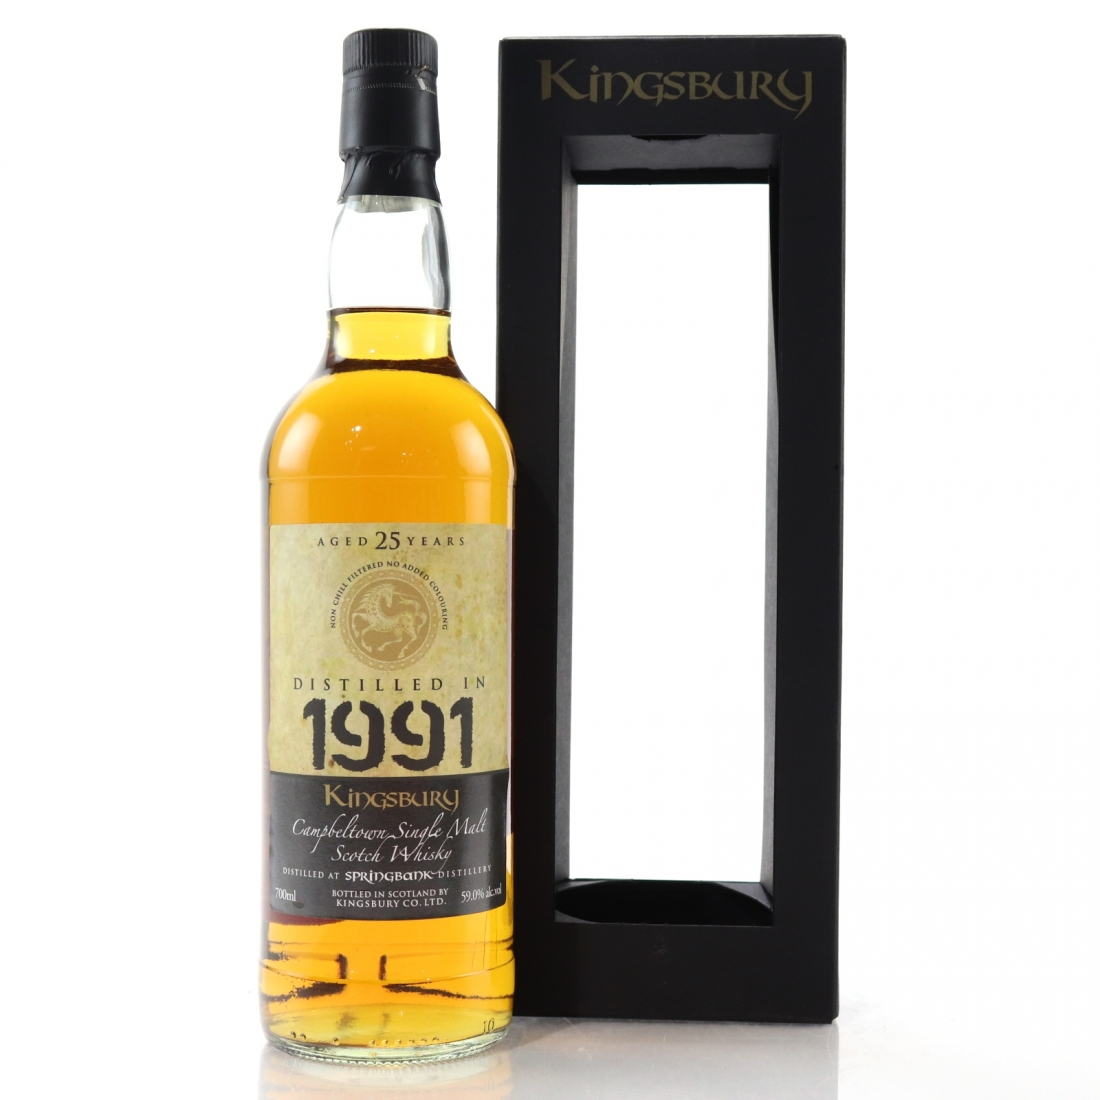 Springbank 1991 Kingsbury 25 Year Old